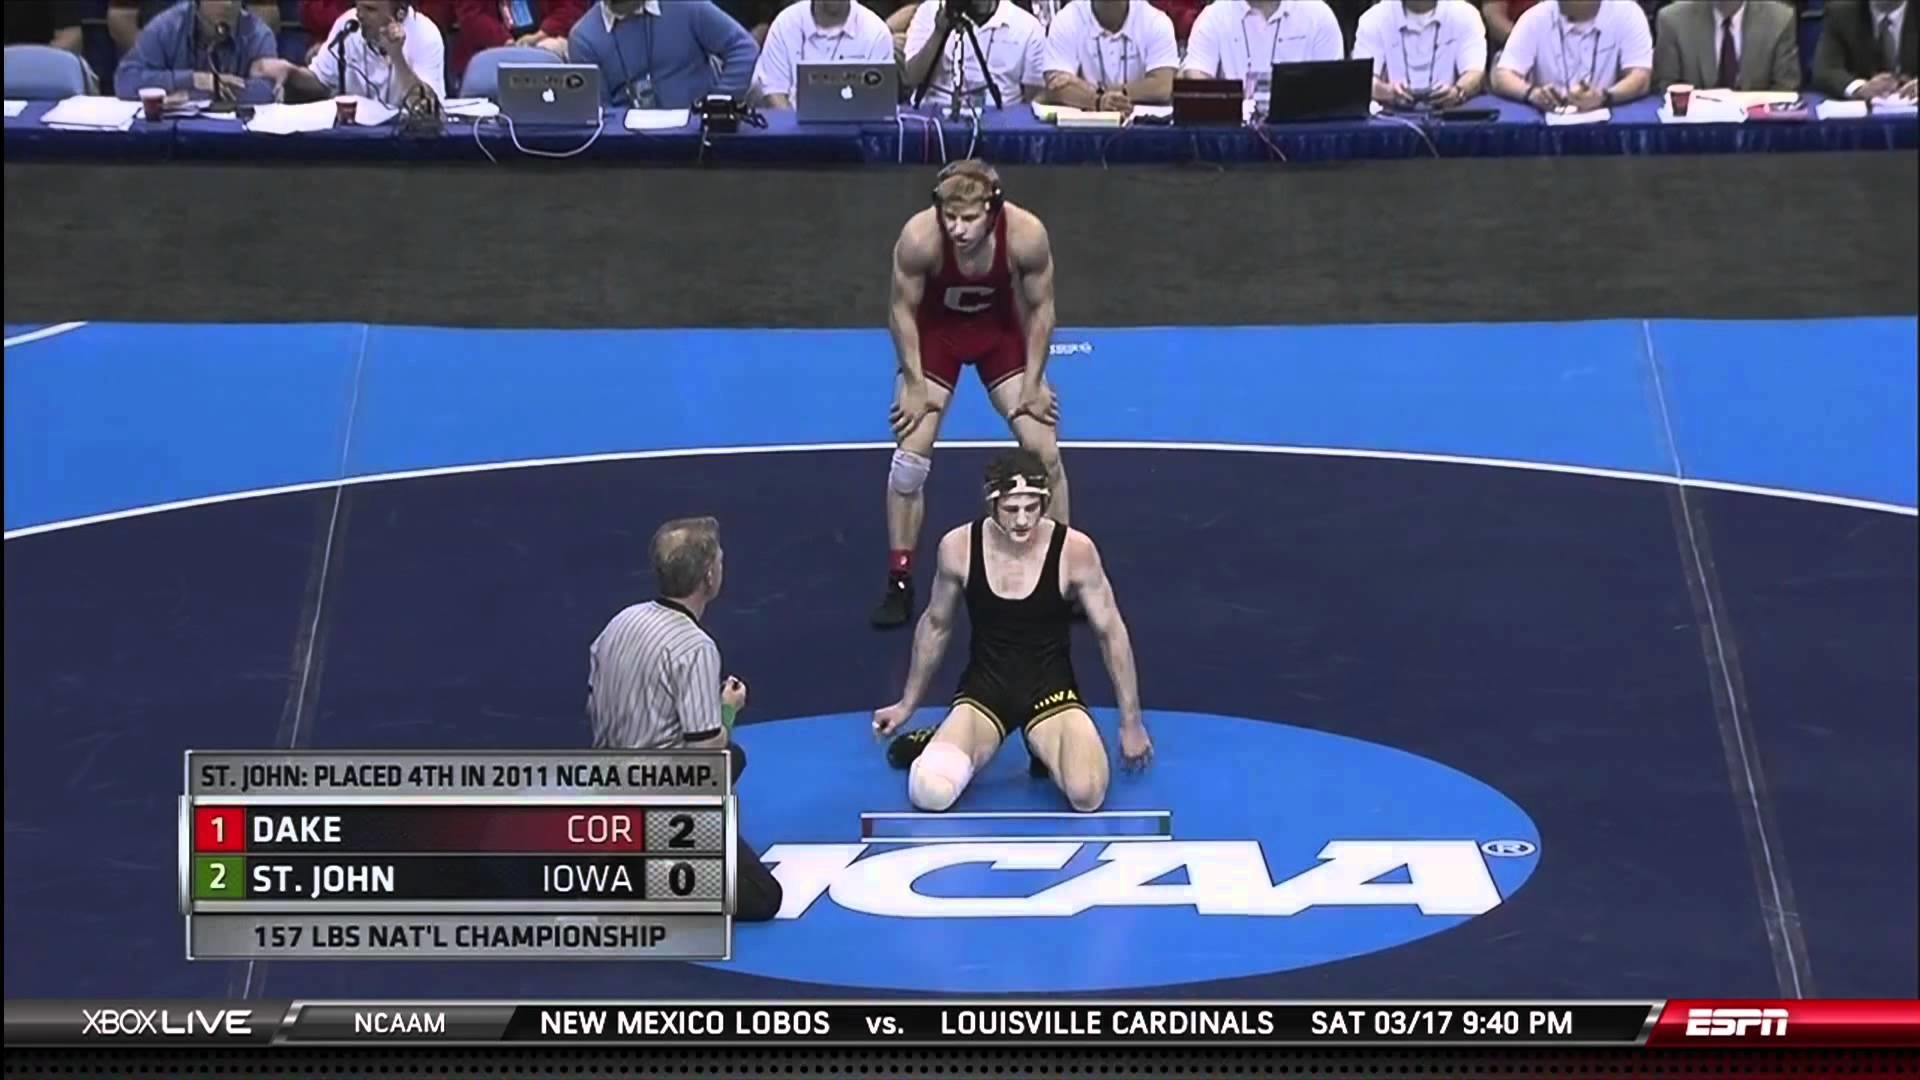 1920x1080 NCAA Wrestling National Championships Division 1 Kyle Dake vs Derek St John  - YouTube